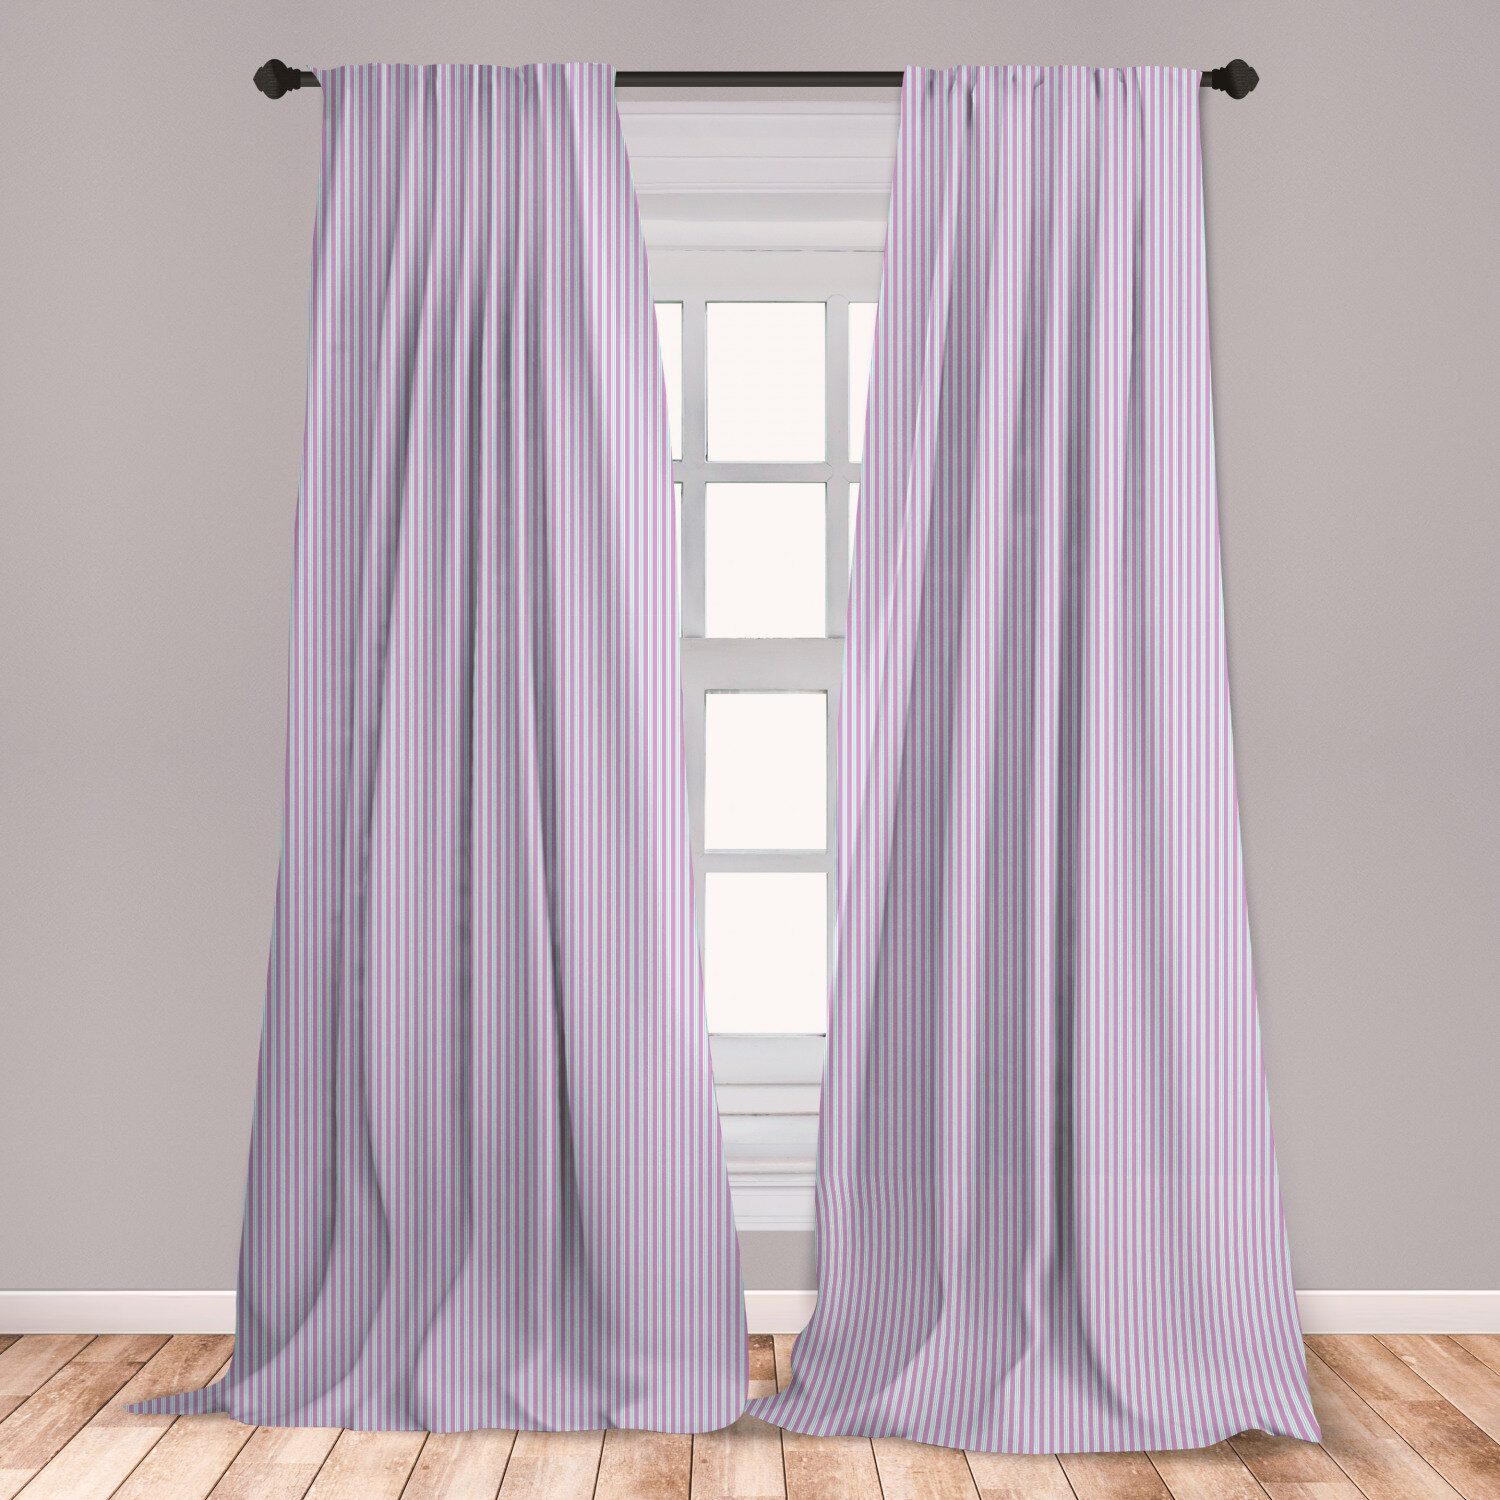 East Urban Home Pinstripe Striped Room Darkening Rod Pocket Curtain Panels Wayfair